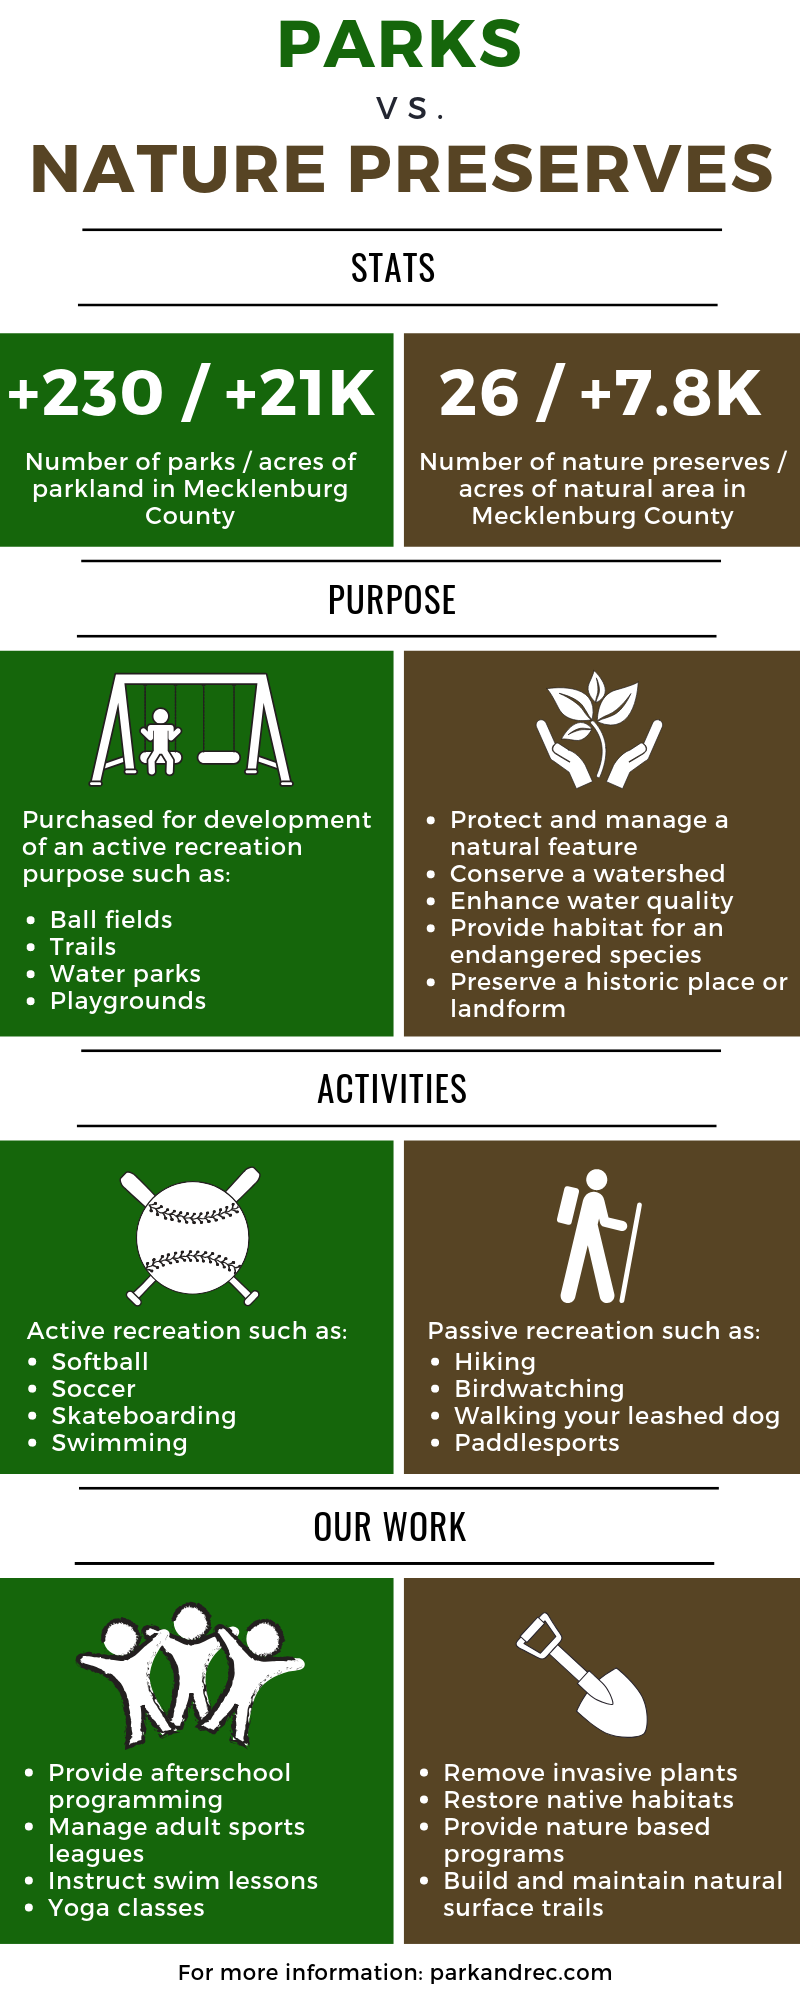 Infographic explaining the difference between parks and nature preserves, including their purposes, the activities you can do at each, and the work Park and Rec does at each.